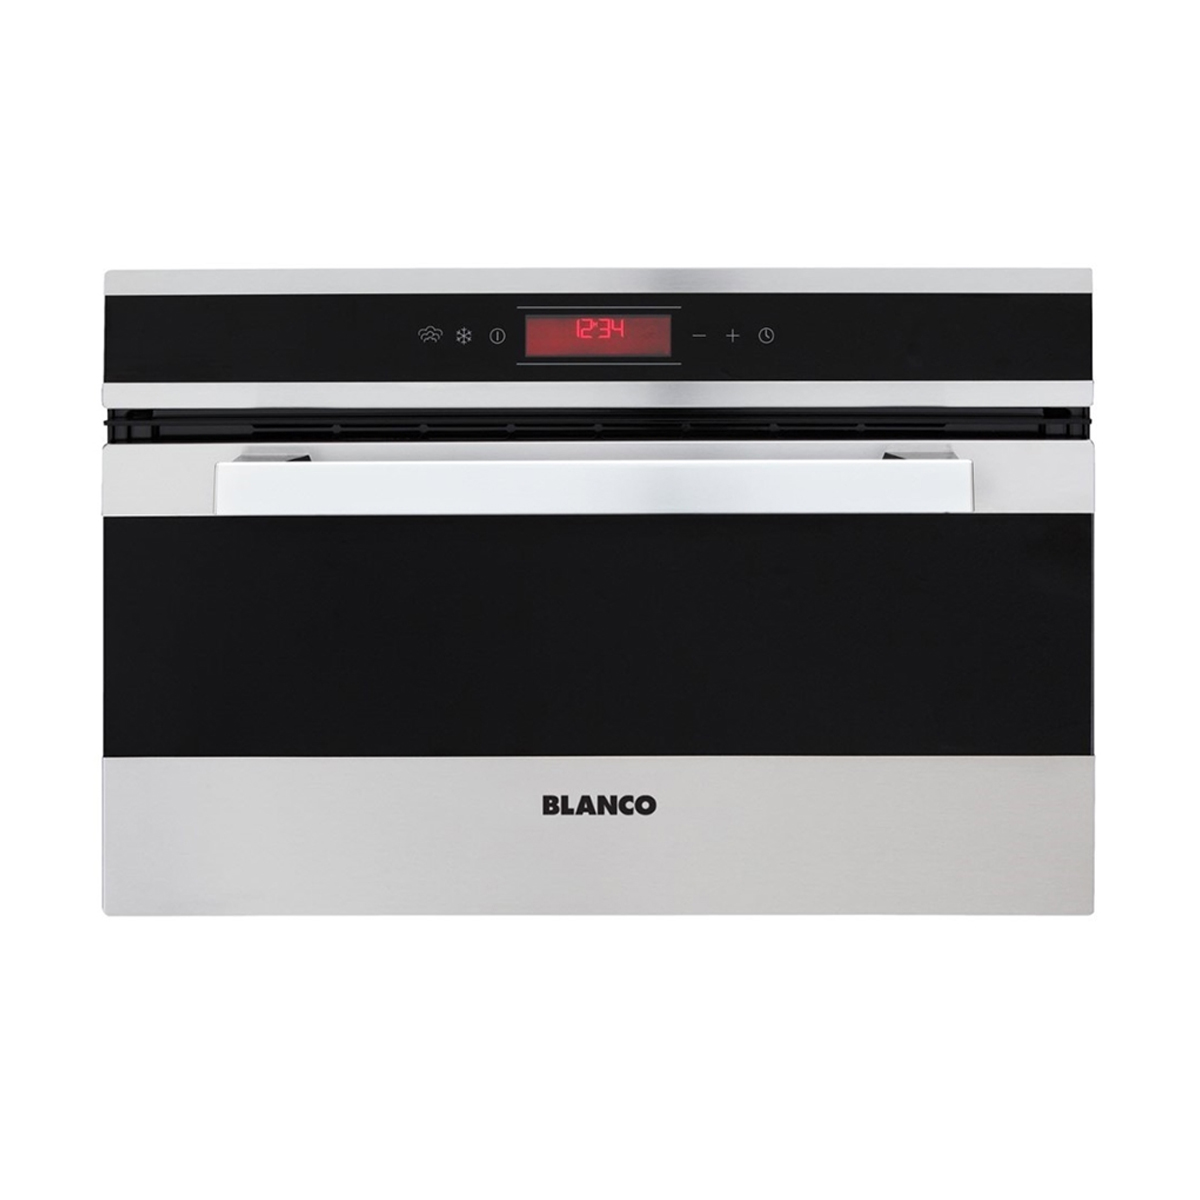 Blanco BOSS382X 60cm 23L Capacity Steam Oven